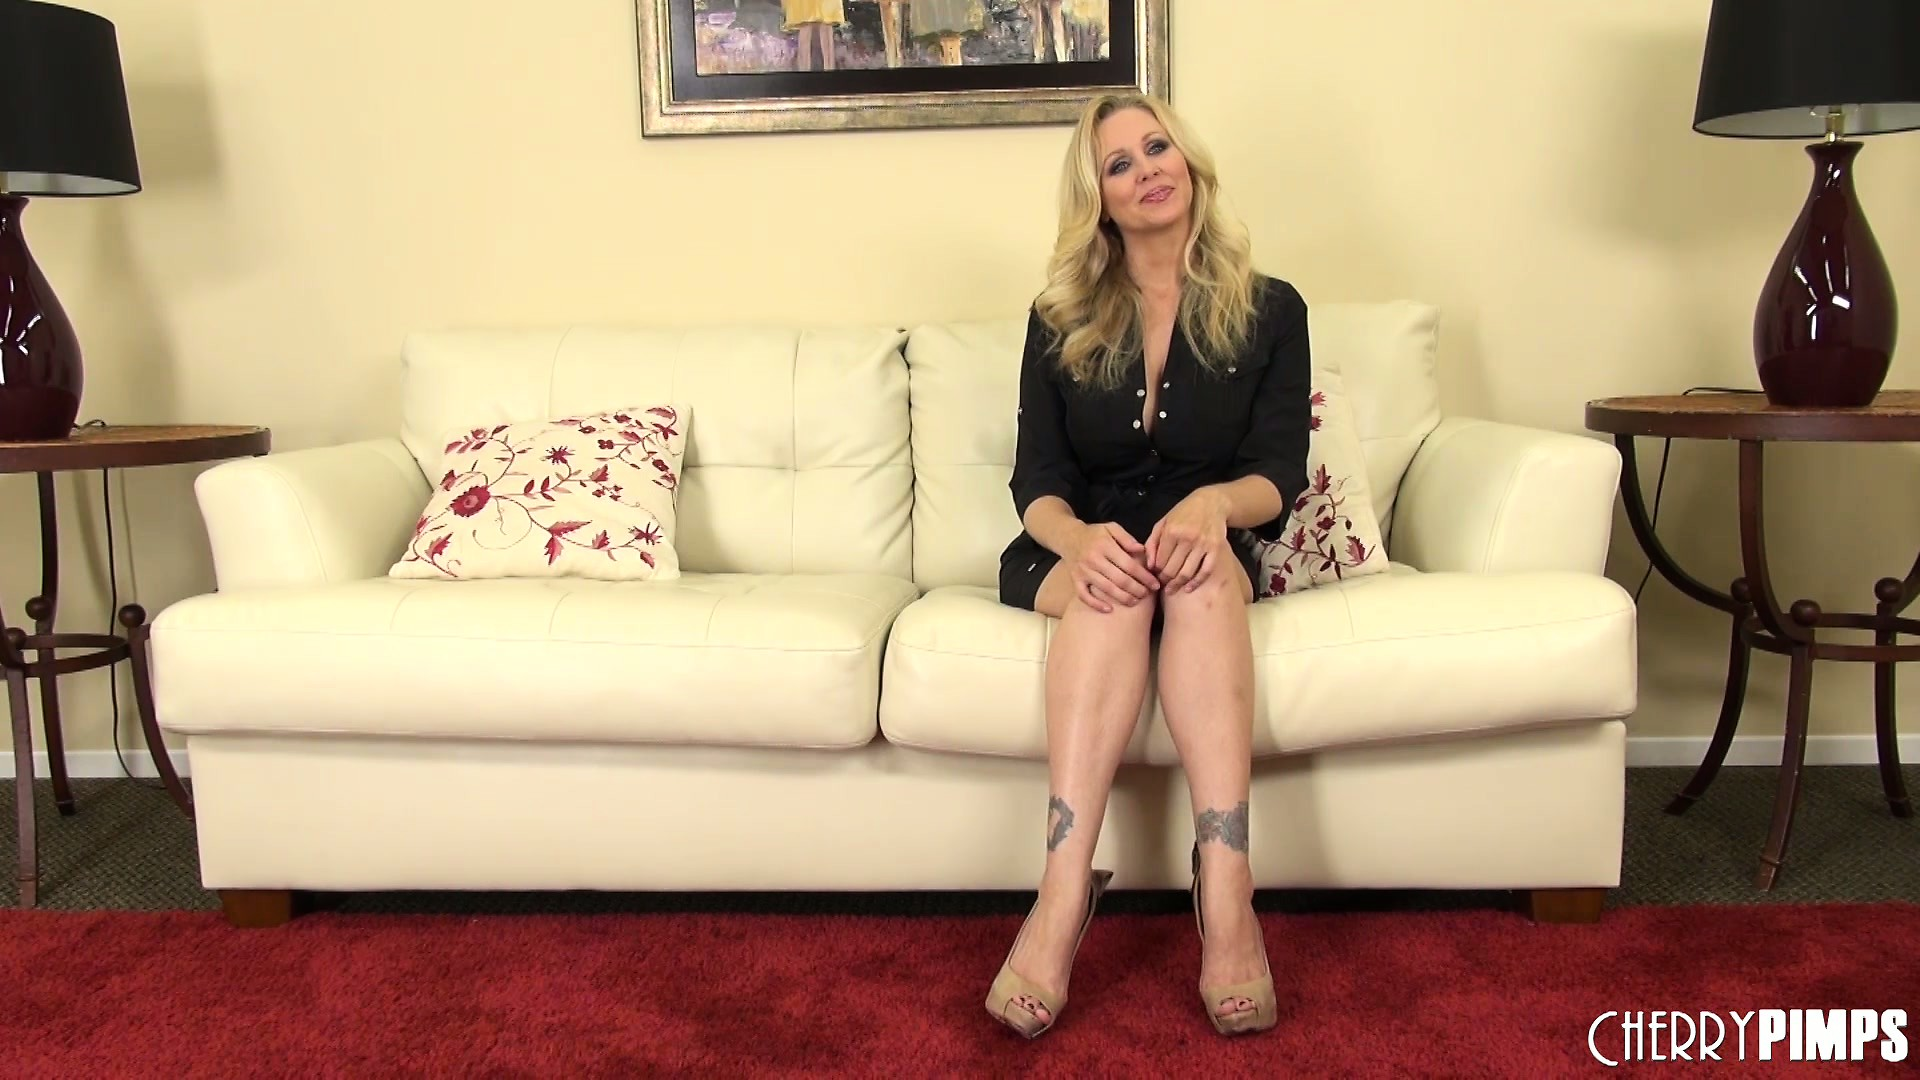 Porno Video of Julia Ann Sits On The Sunny Yellow Couch And Talks About Her Sexcapades